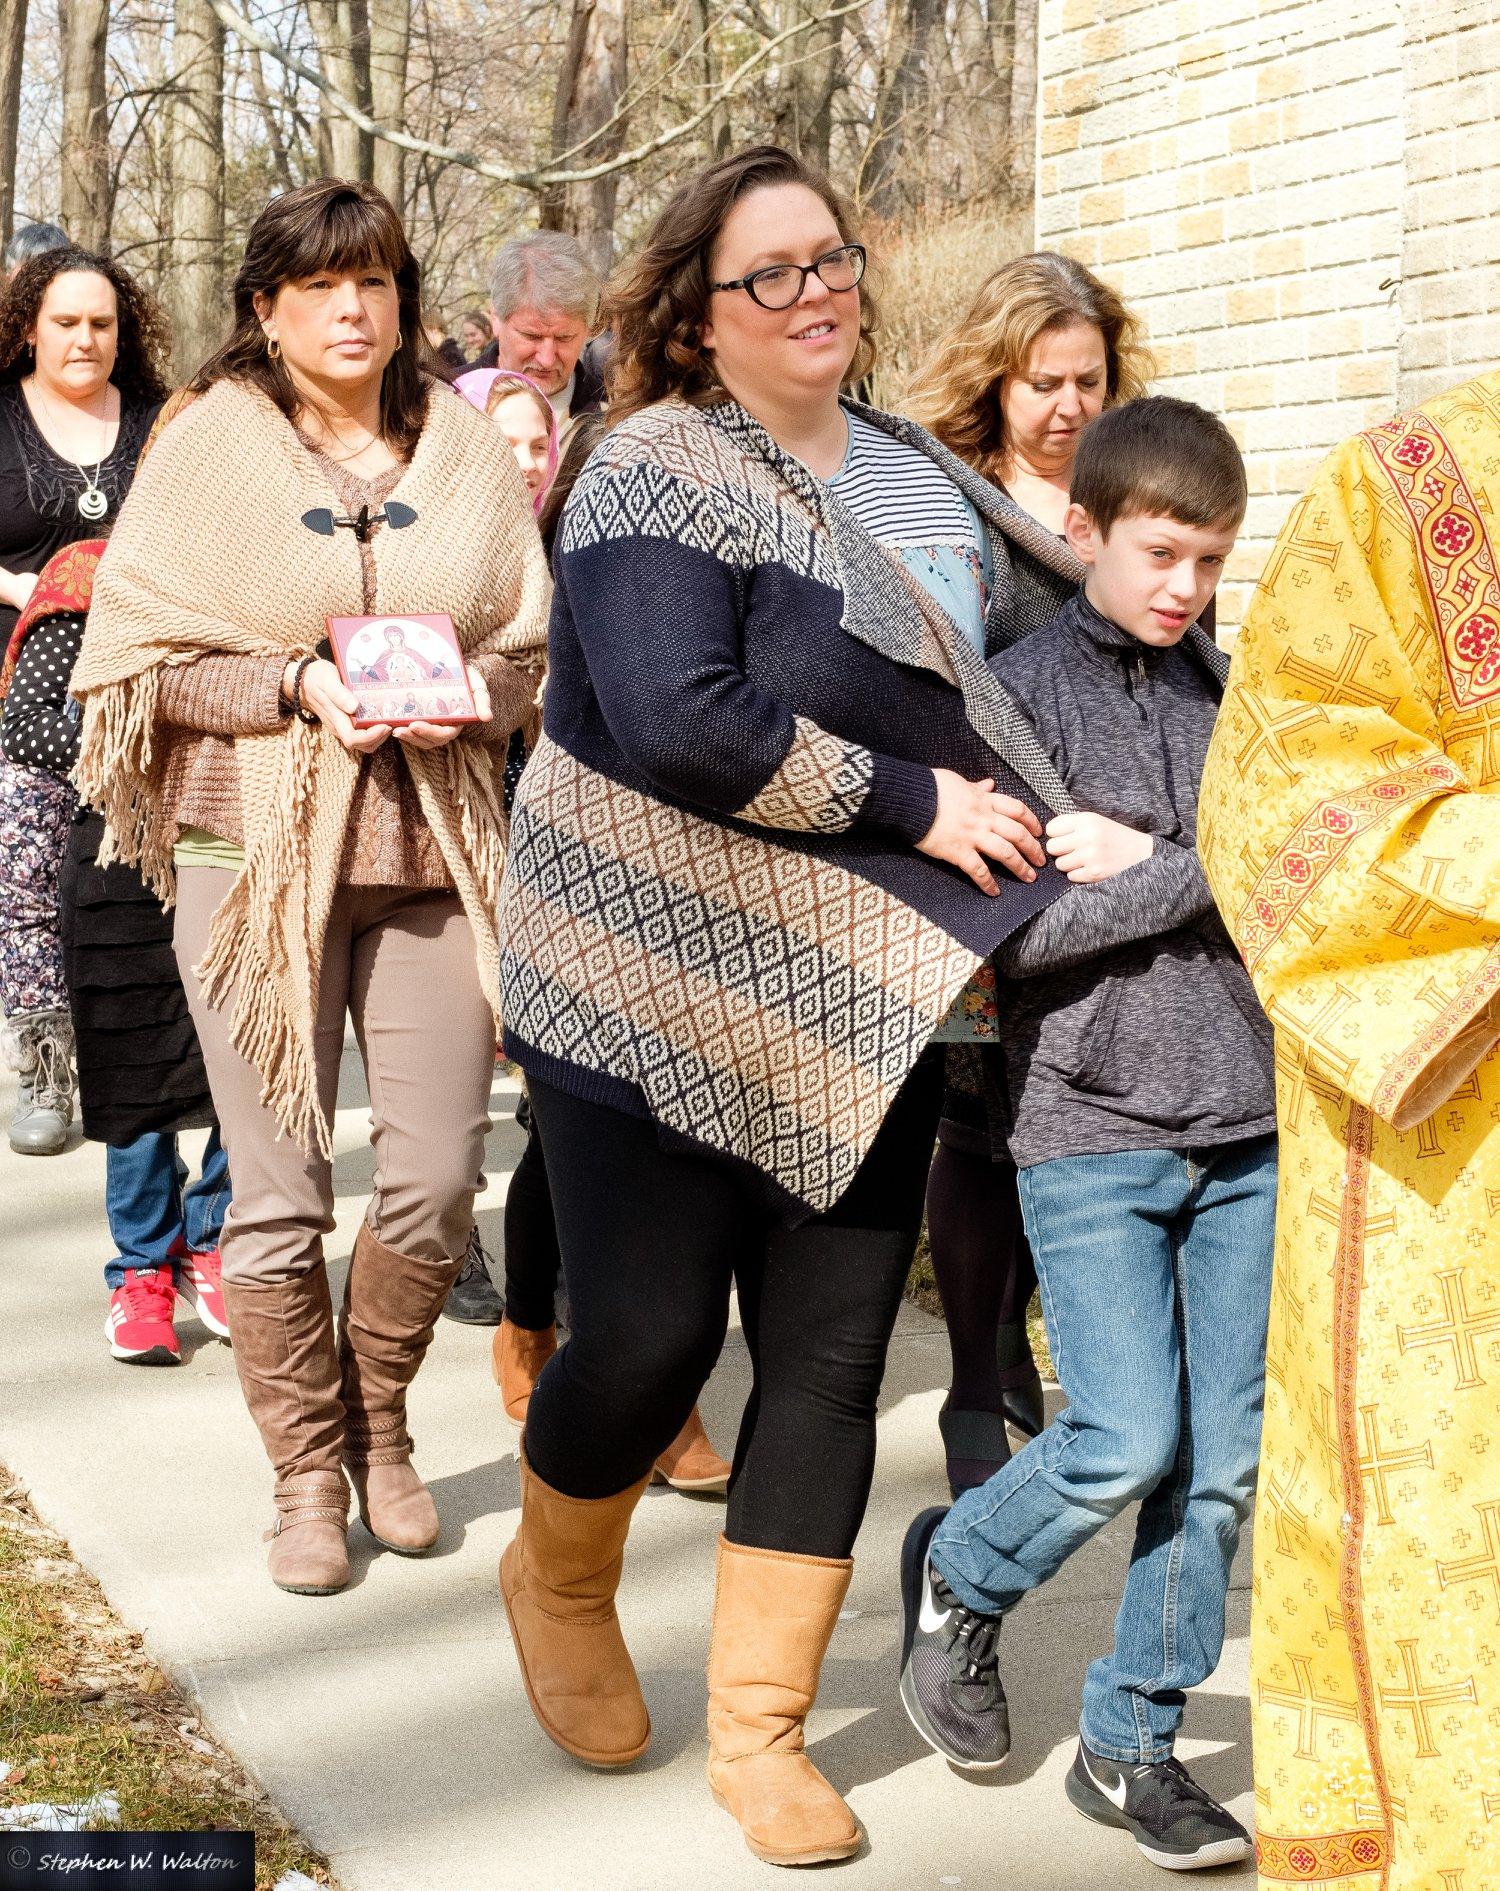 parishioners in procession outside holding icons